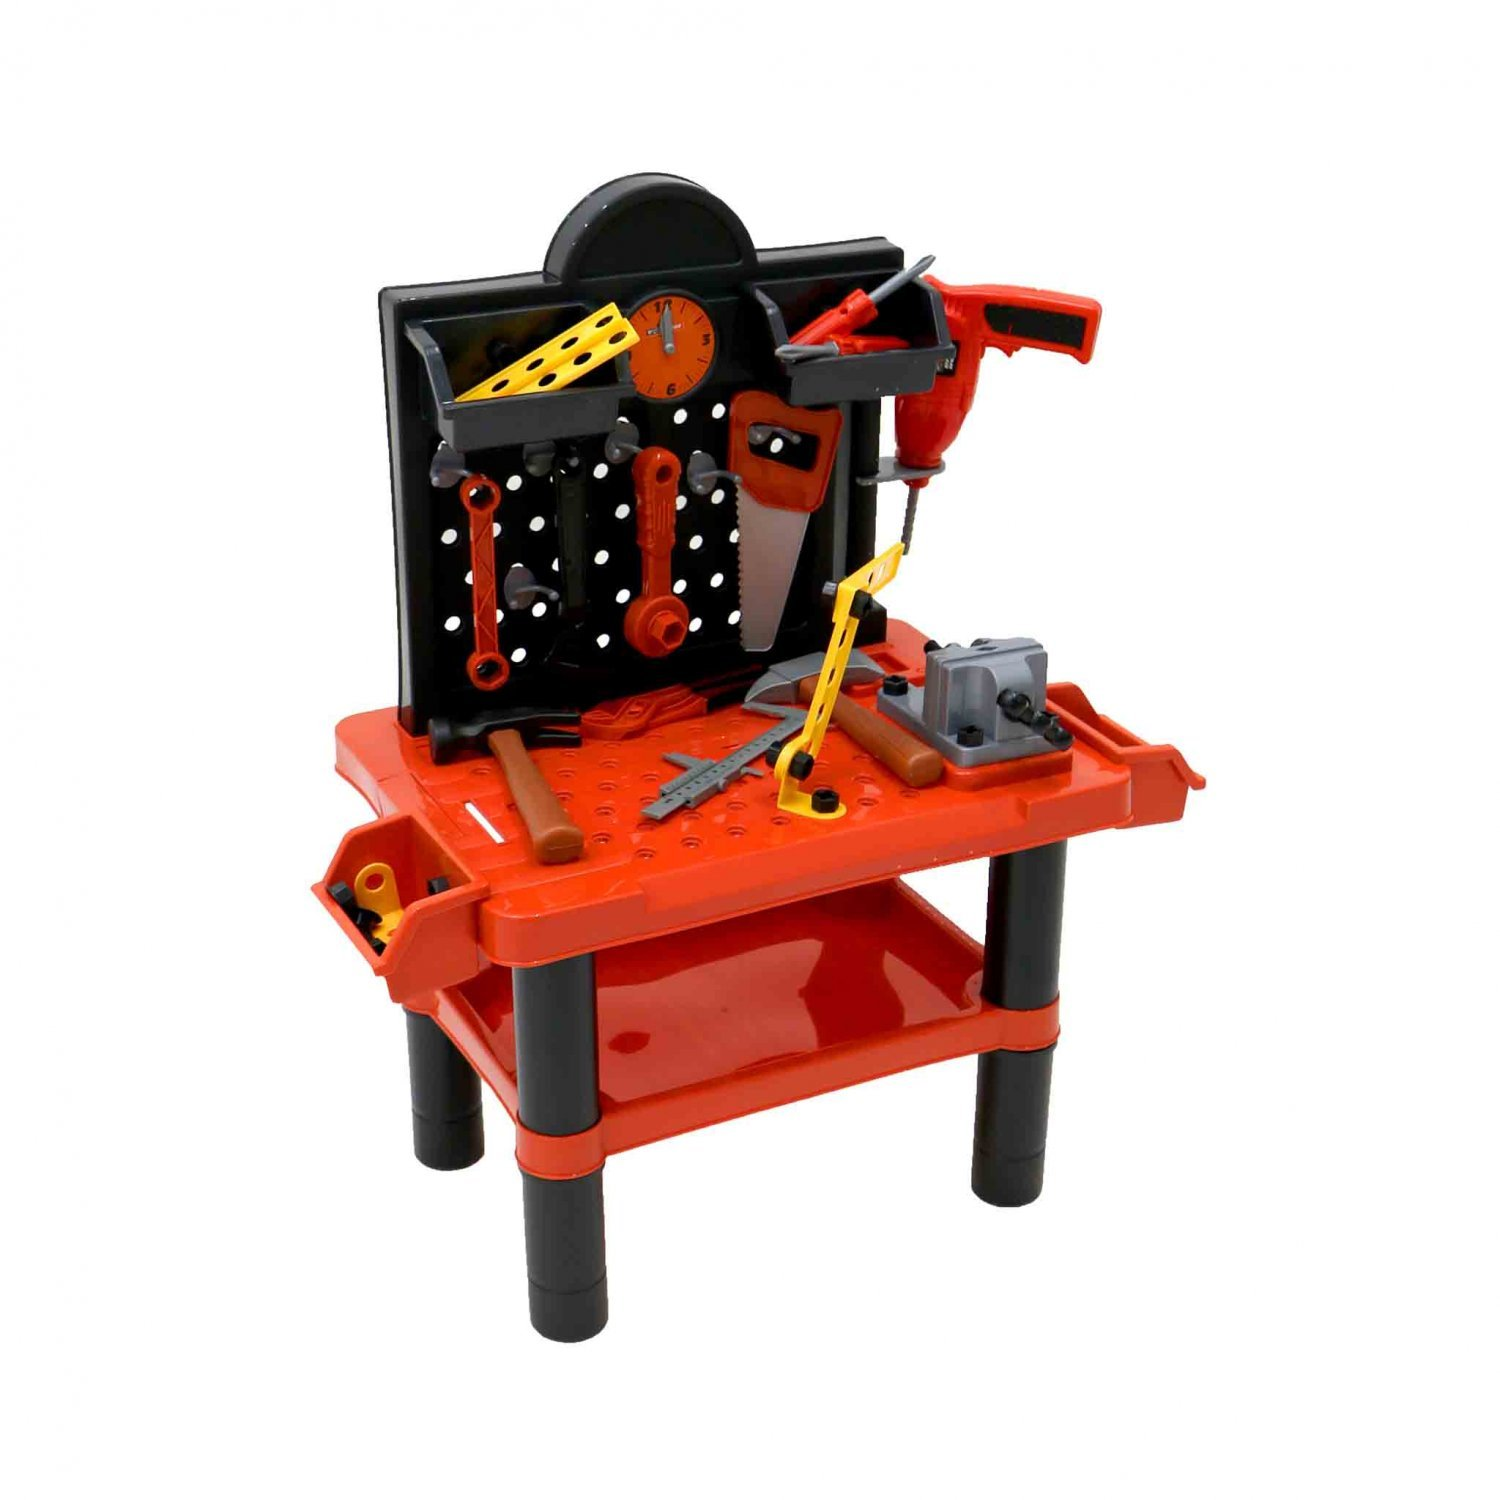 Childrens Kids Play Toy Workbench Tools Kit Workshop Playset Oypla Stocking The